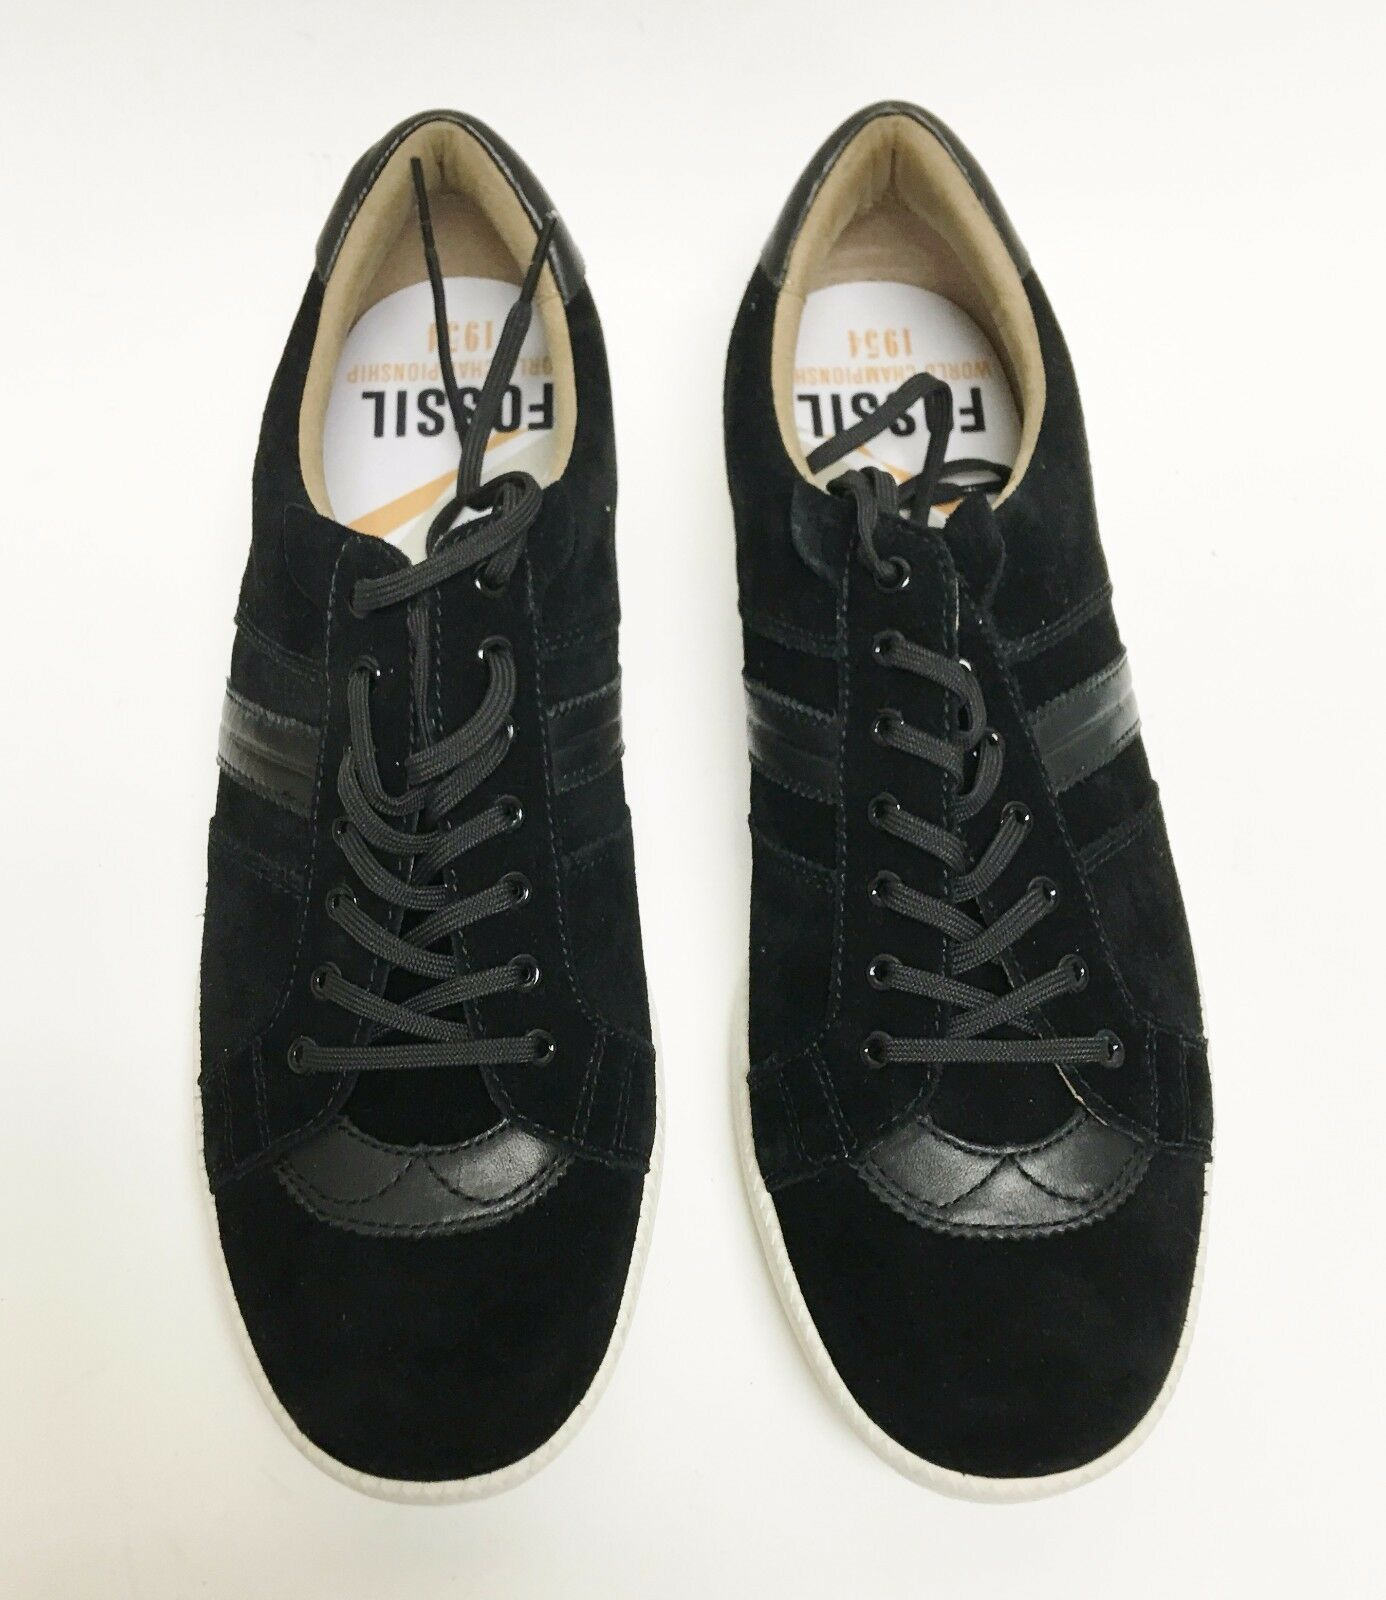 FOSSIL MAZZA SUEDE,LEATHER BLACK SNEAKERS TENNIS MEN'S SHOES~SIZE 11